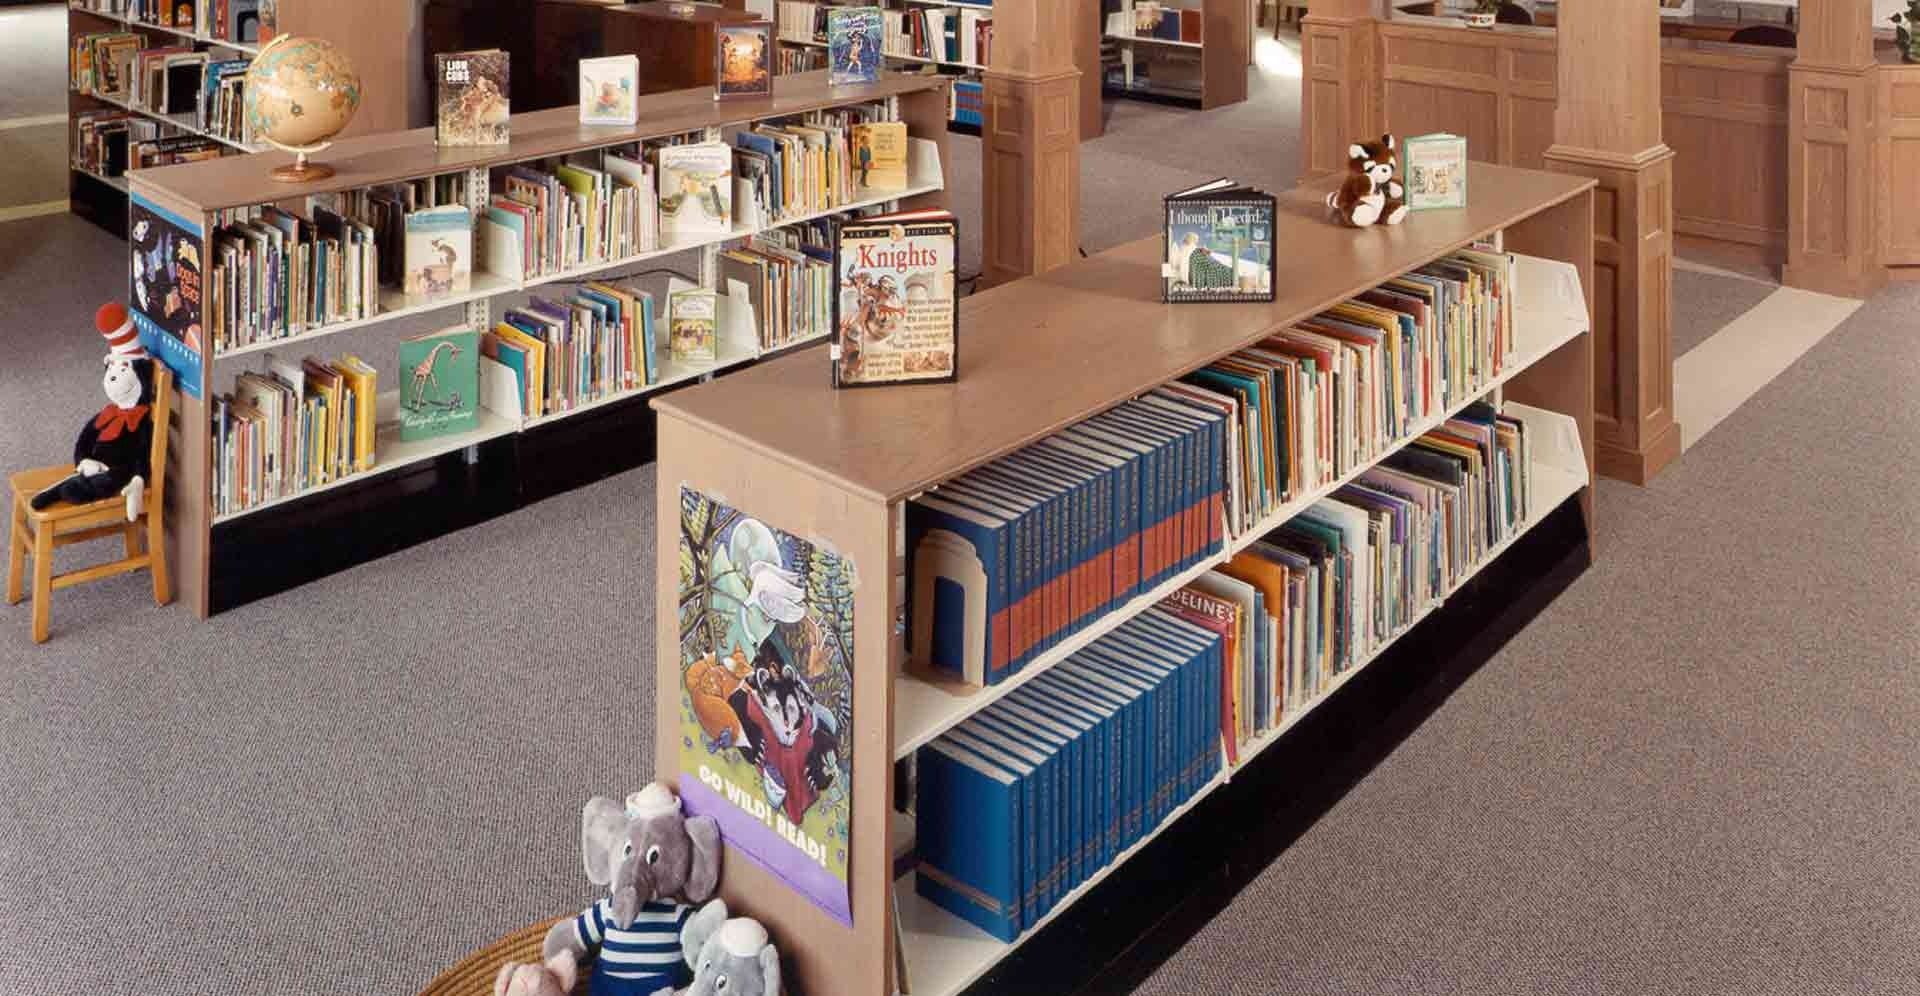 CHAPLIN-LIBRARY-AND-SENIOR-CENTER-CHILDRENS-SECTION.jpg